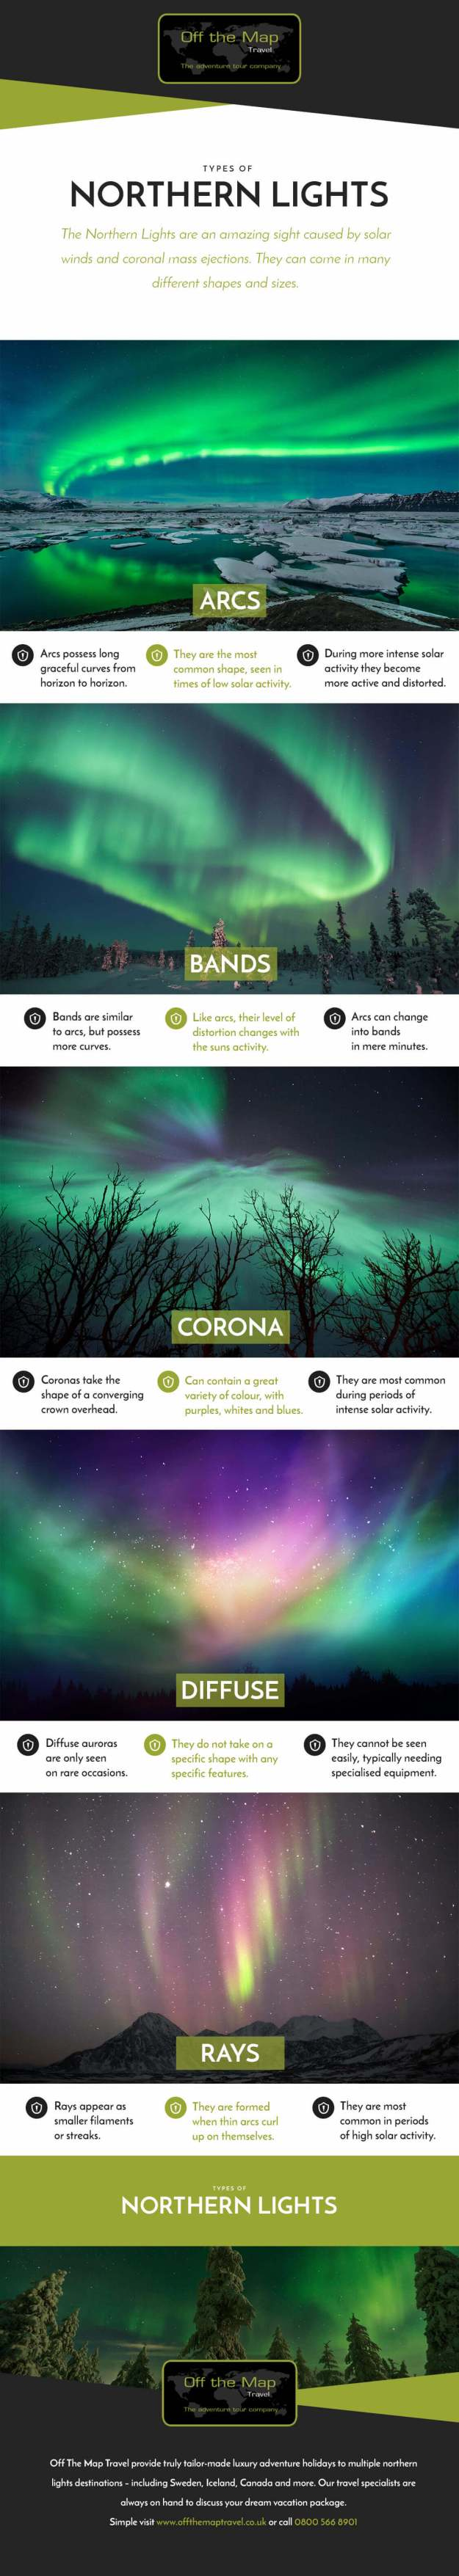 Types of Northern Lights